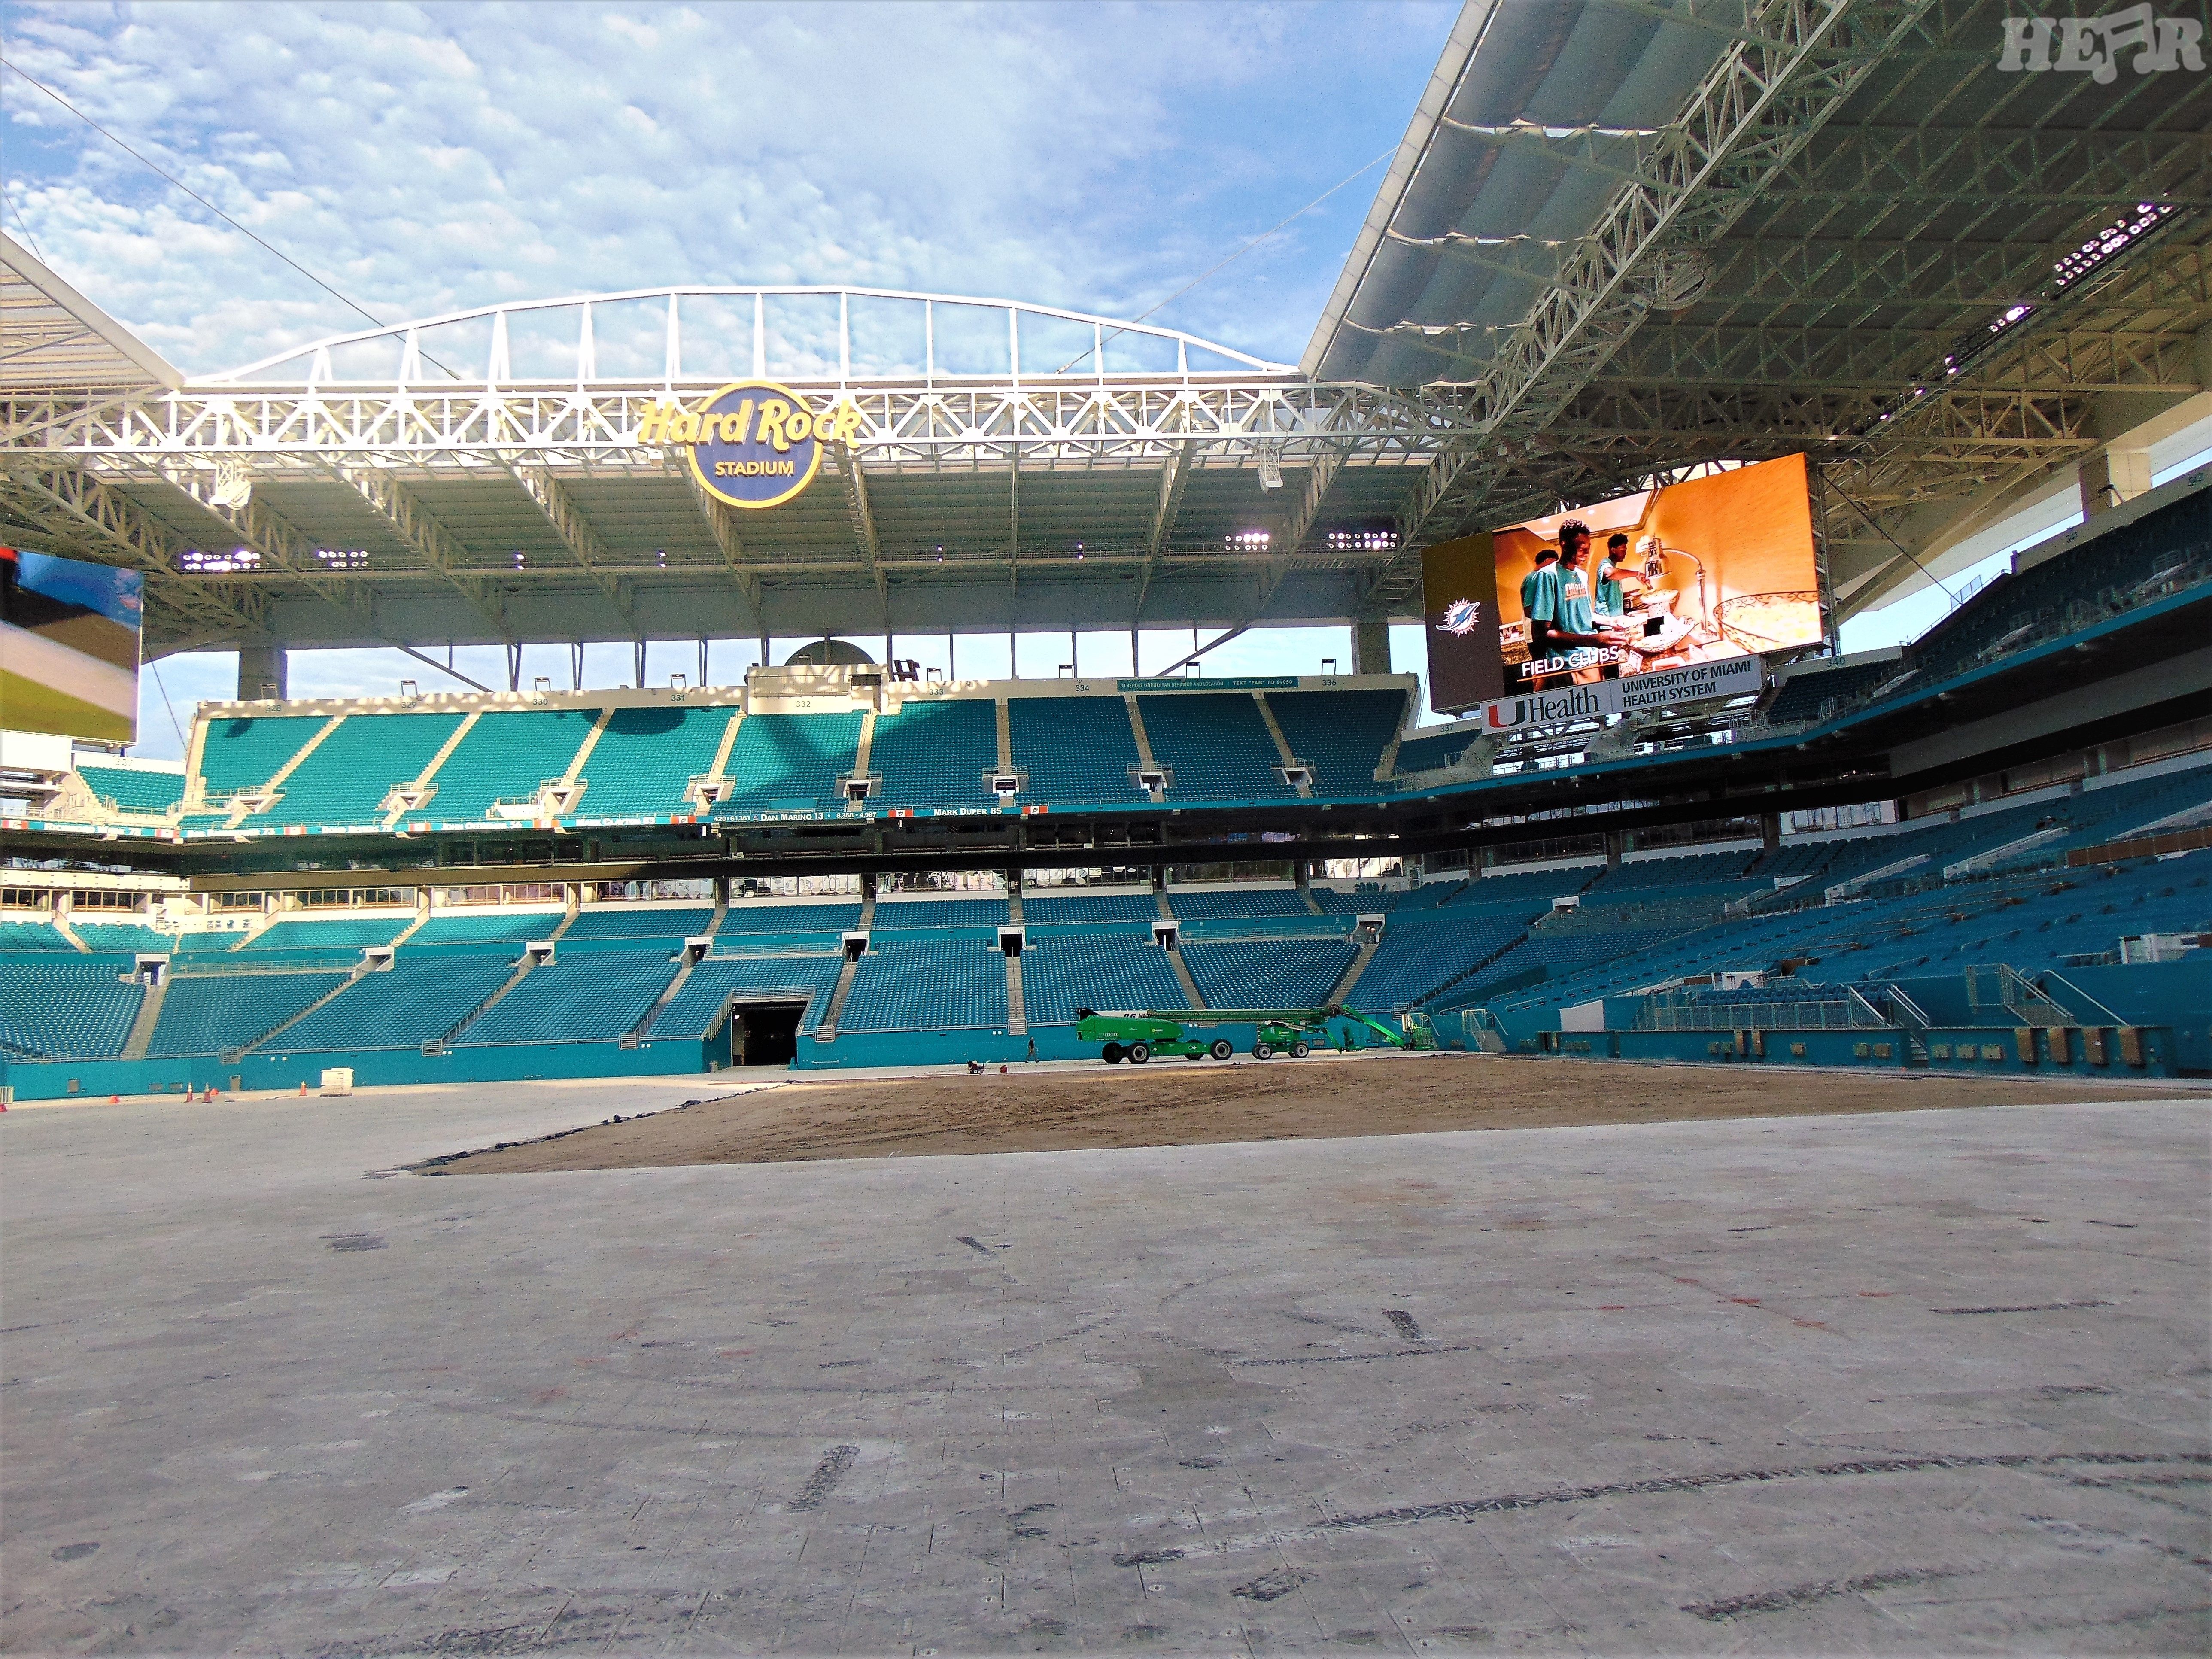 Miami Dolphins Draft Party 33